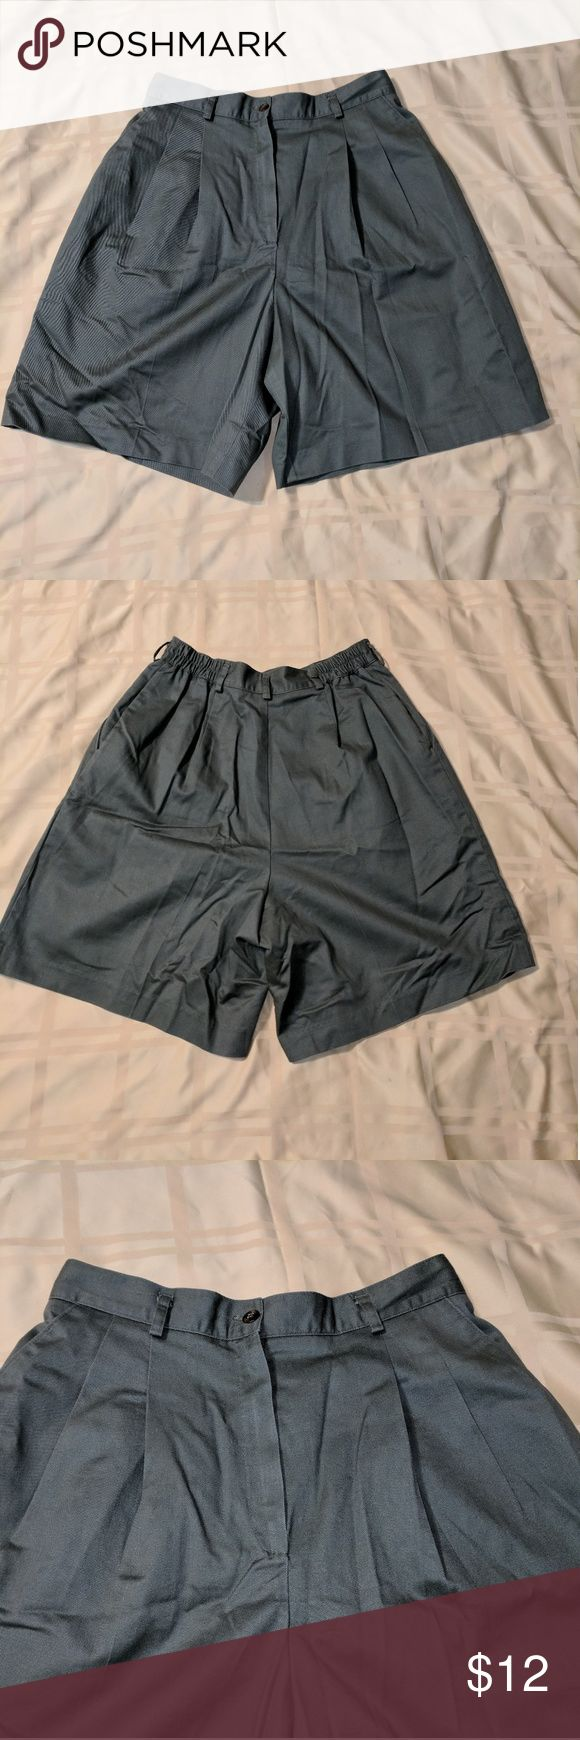 Ladies Allison Daley petite olive green shorts Allison Daley petite size 12 olive green colored shorts.  100% cotton has button and working zipper. Front pockets and belt loops. Comment with any questions Allison Daley Shorts Bermudas